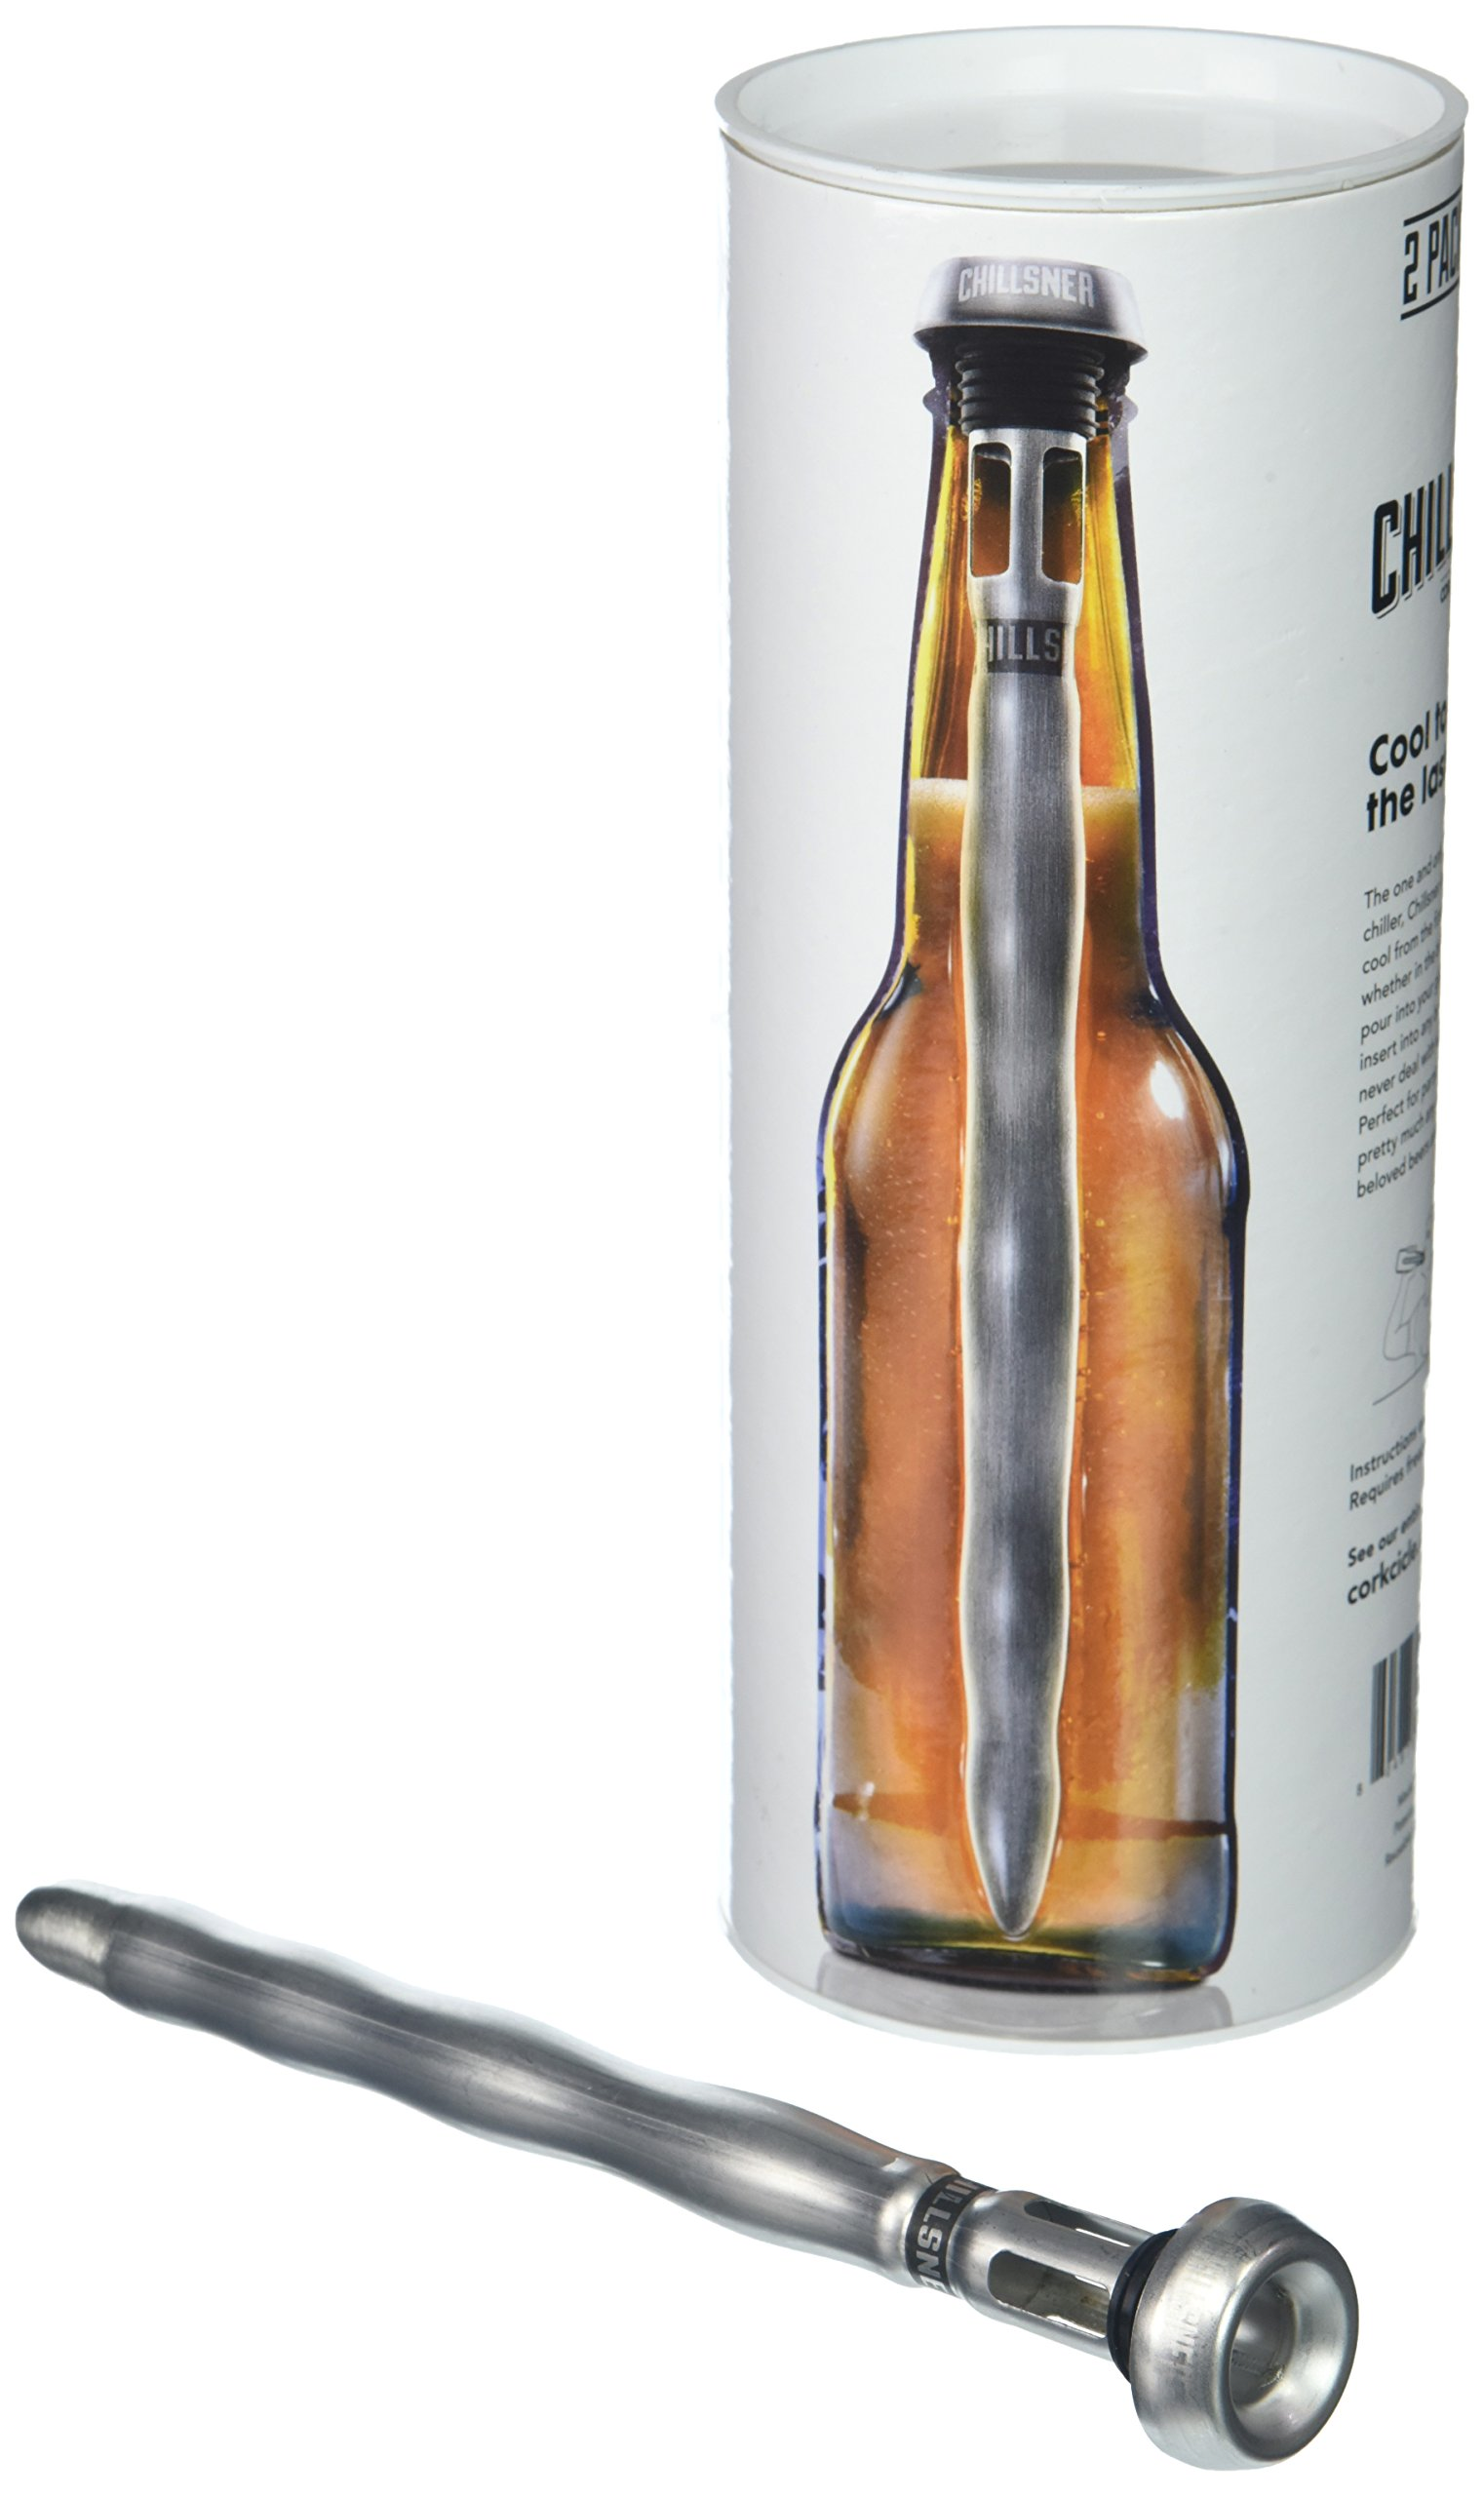 Corkcicle Chillsner Beer Chiller, 2-Pack by Corkcicle